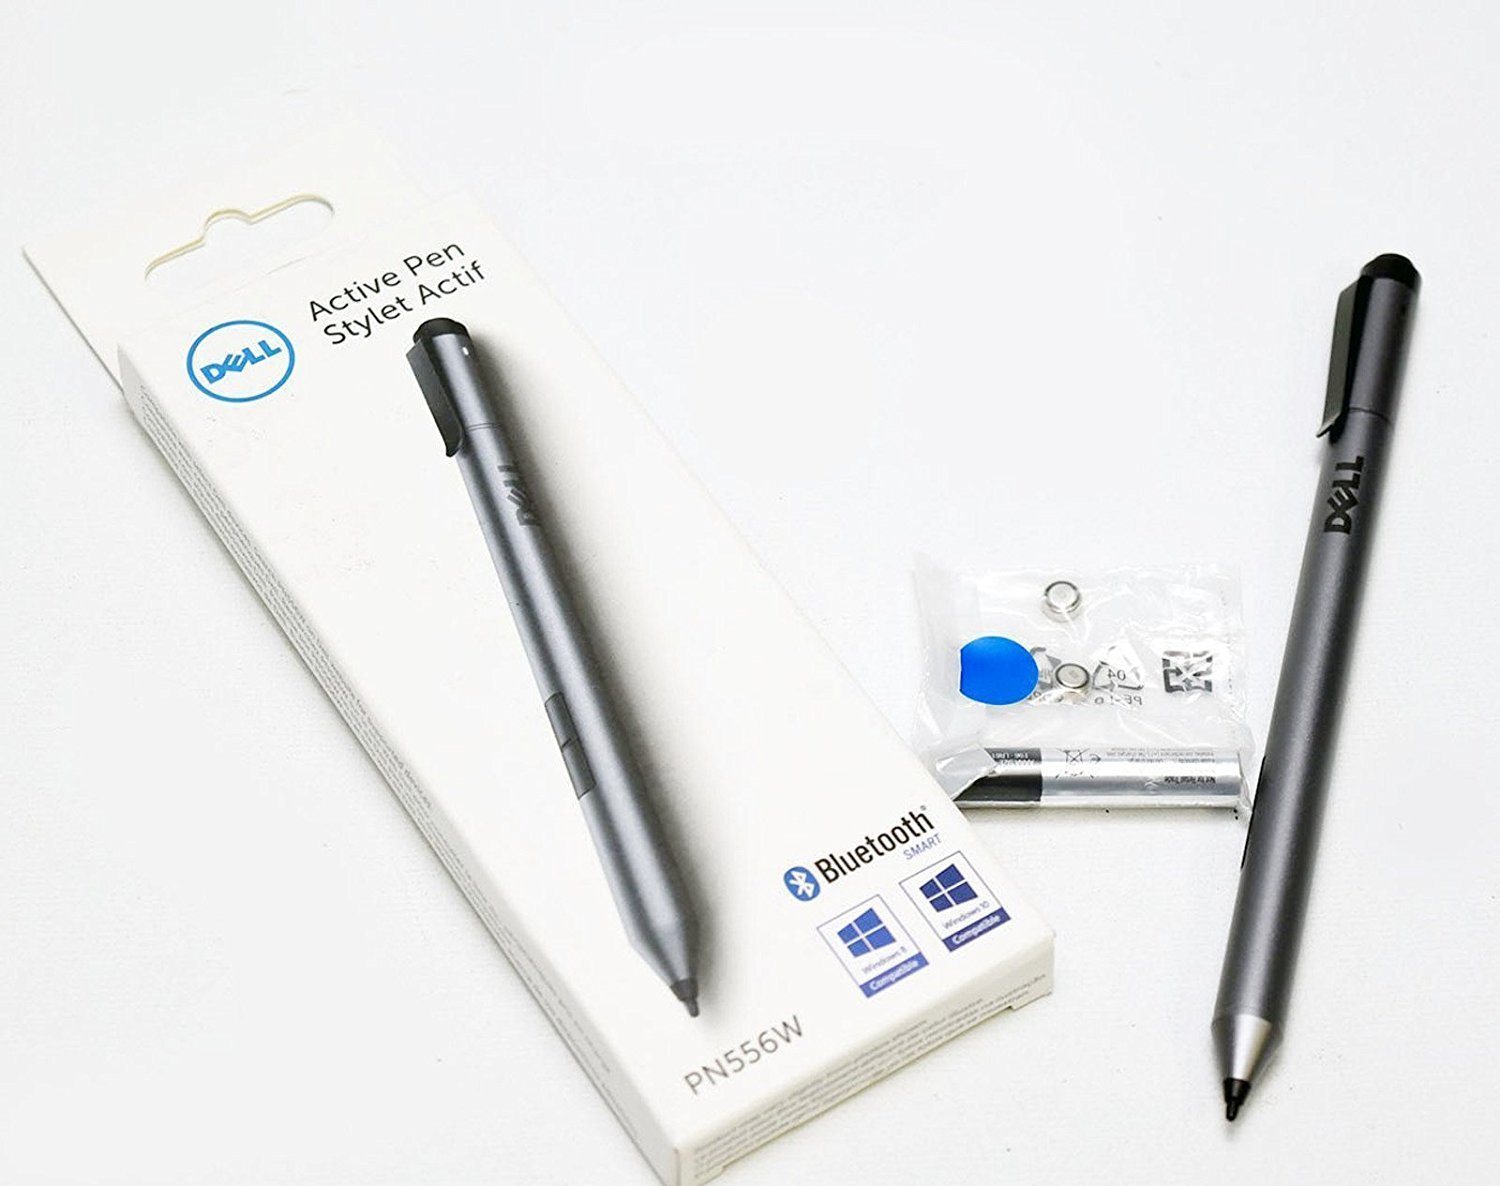 Dell Active Stylus Pen compatible with New Dell XPS 15 9570 touch XPS 9575 2-in-1 XPS 13 9365 2-in-1, Latitude 511 (5175), 11 (179), 7275, 10 Pro (5056),Venue 8 Pro (5855), XPS 12 (9250)